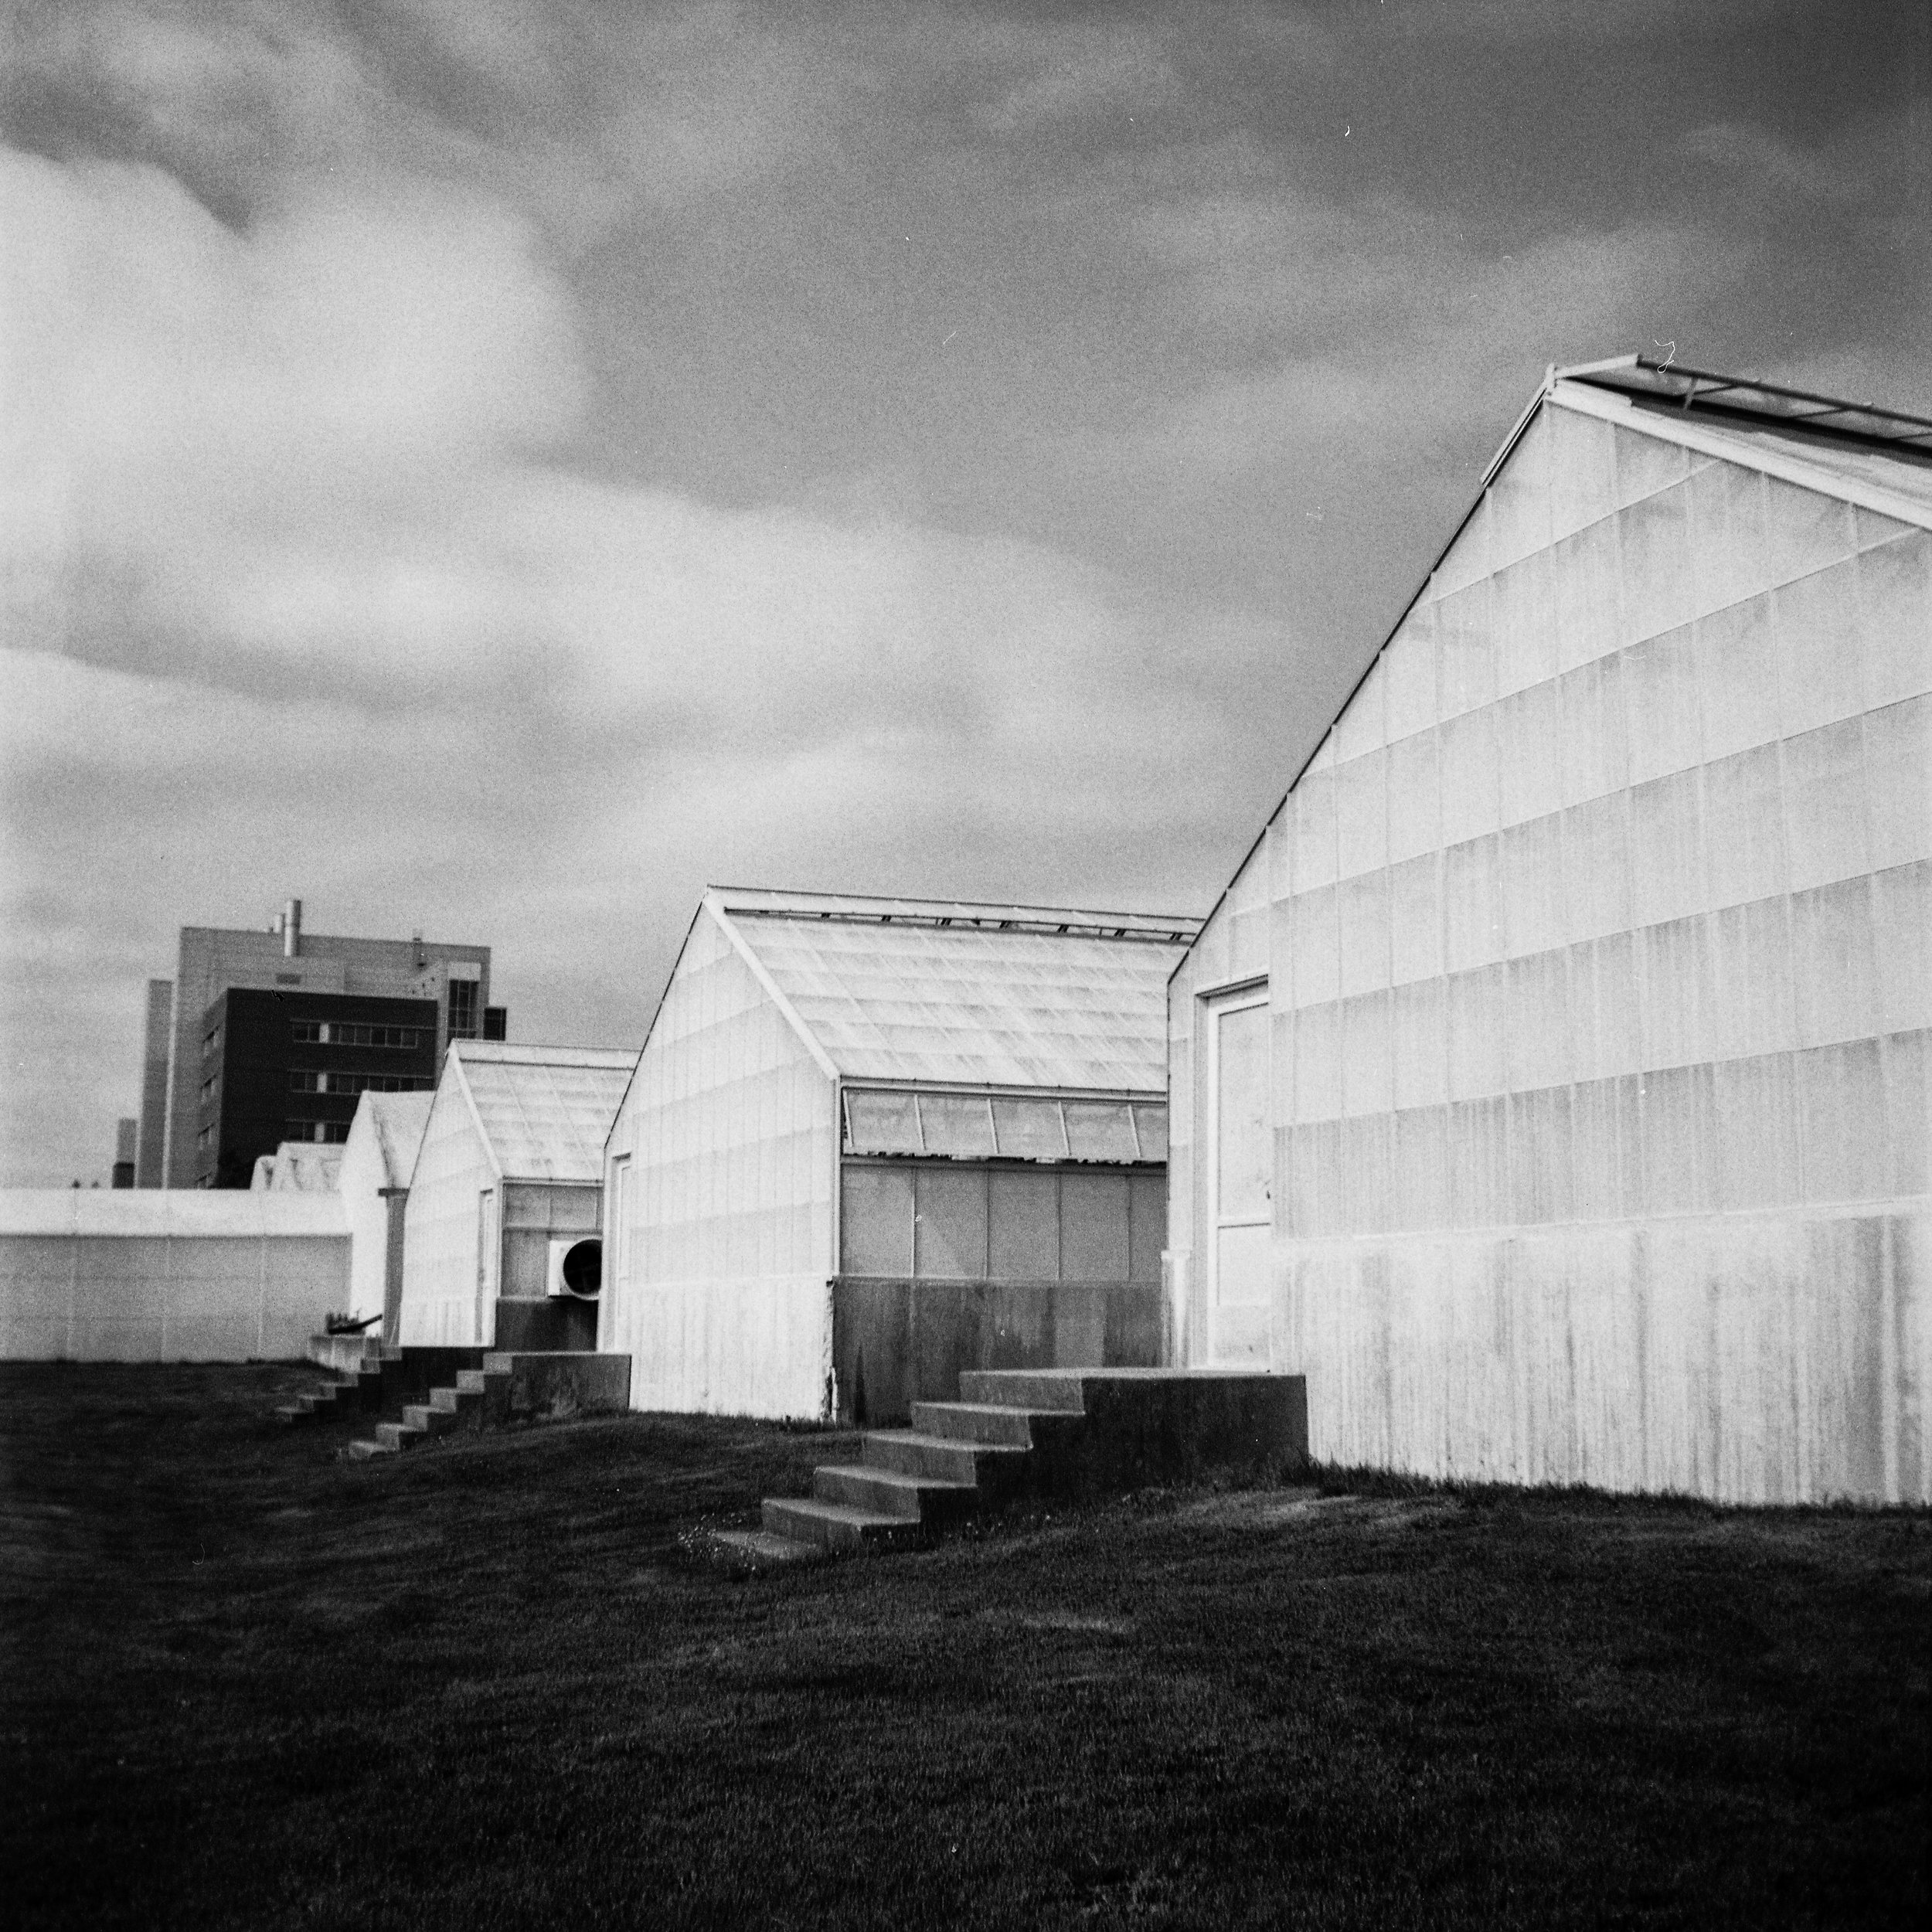 1949 Kodak Brownie Hawkeye Photo Medium Format 620 Film Zoe Kissel Photo East Lansing MSU Campus